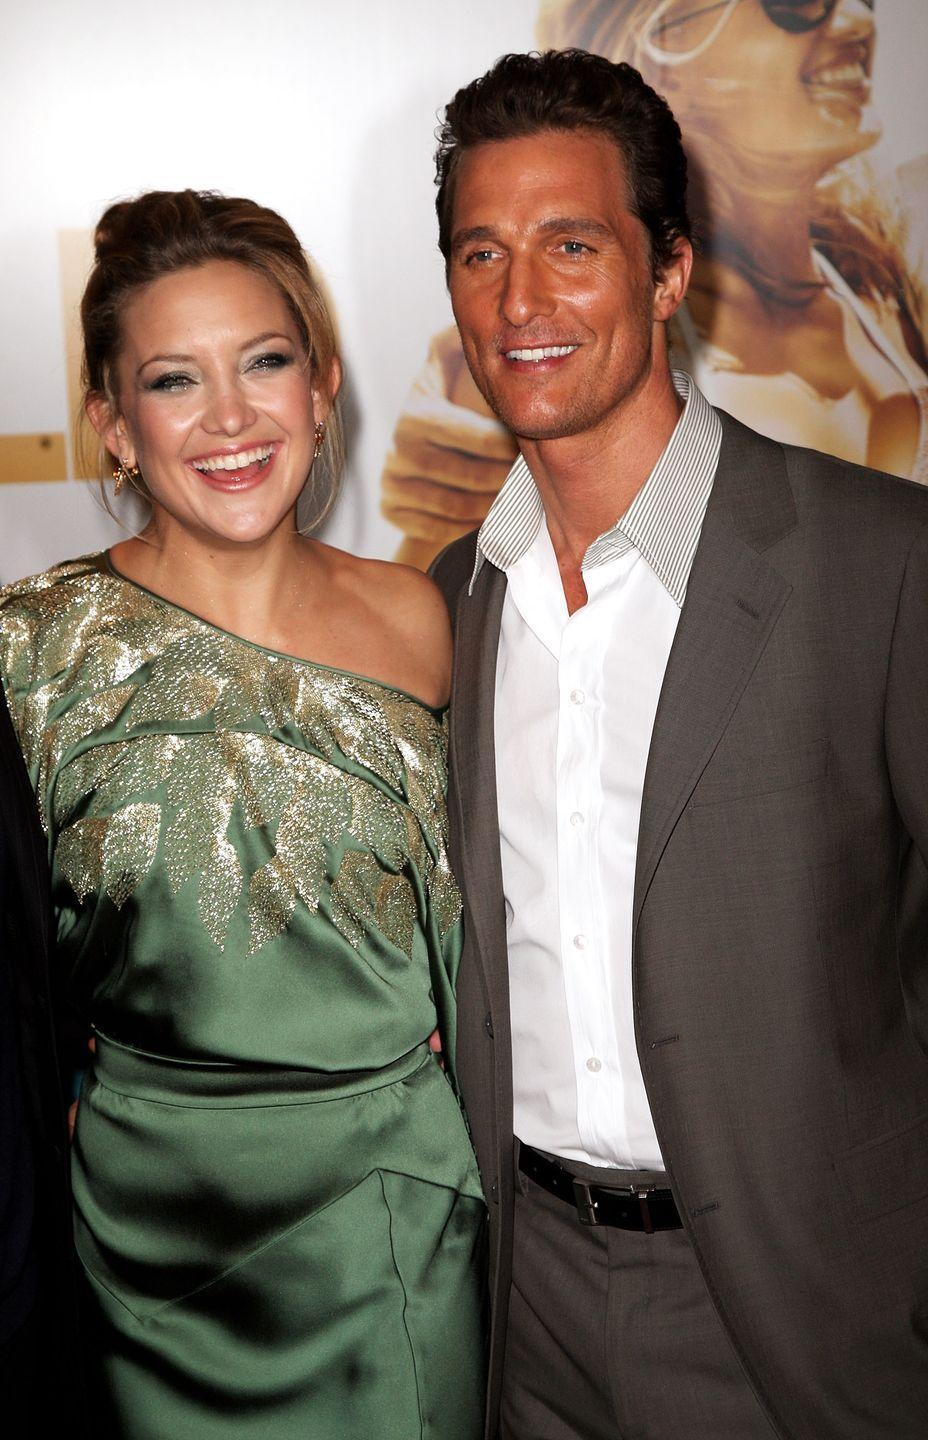 "<p>On an episode of Gwyneth Paltrow's <em>Goop</em> <a href=""https://www.marieclaire.com/celebrity/a34380451/kate-hudson-gwyneth-paltrow-worst-on-screen-kisses/"" rel=""nofollow noopener"" target=""_blank"" data-ylk=""slk:podcast"" class=""link rapid-noclick-resp"">podcast</a>, rom-com queen Kate Hudson opened up about who she shared her worst on-screen kiss with. The answer? Matthew McConaughey! </p><p>""The thing is, every time I kiss McConaughey, it's like, I mean, it's like there's just something happening and there's like snot or wind, or things are just...like when we were kissing in the end of <em>Fool's Gold</em>, we're like in the ocean, we like had the plane crash,"" she told Paltrow. ""He just had snot all over his face.""</p>"